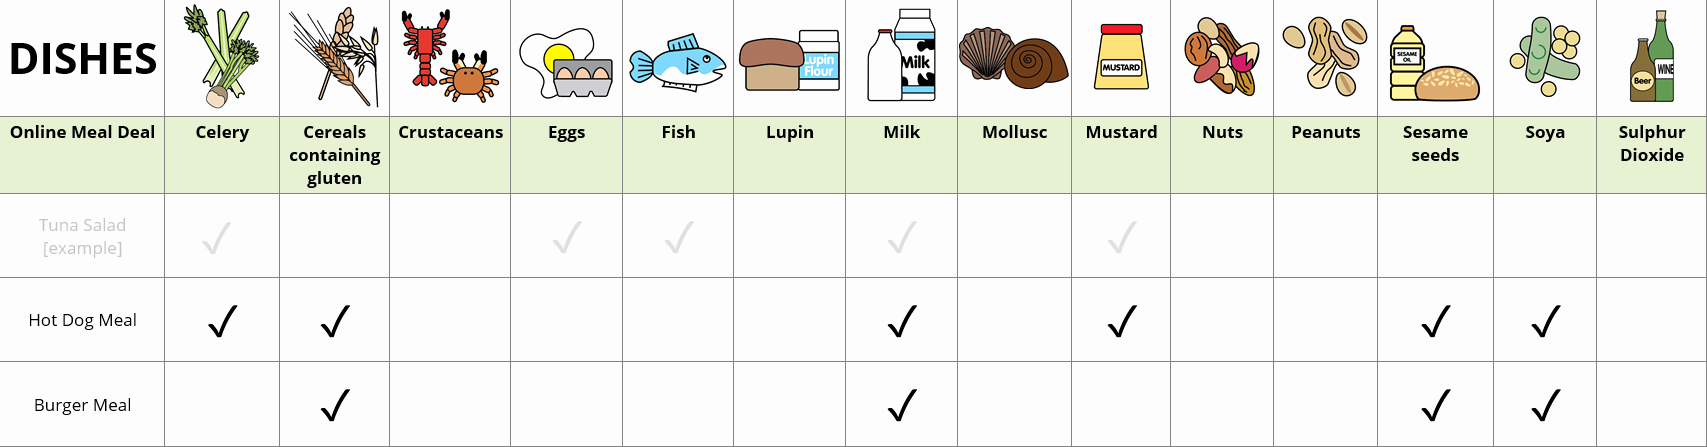 Food Allergy List Template Awesome Allergens Information